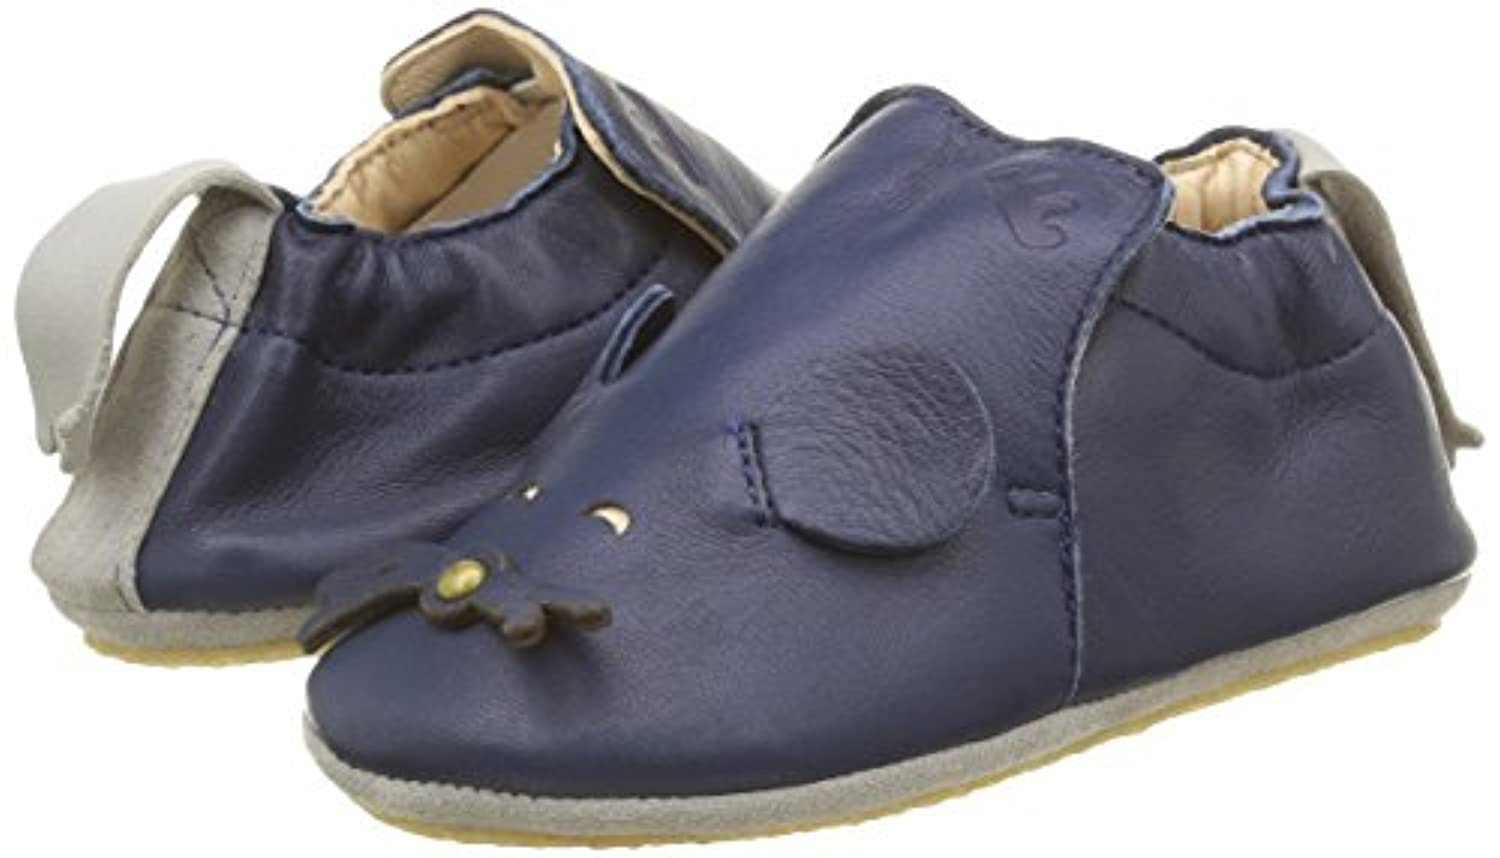 Easy Peasy Boys' Blublu Mousse Warm Lined Shoes Blue Size: 6.5 UK